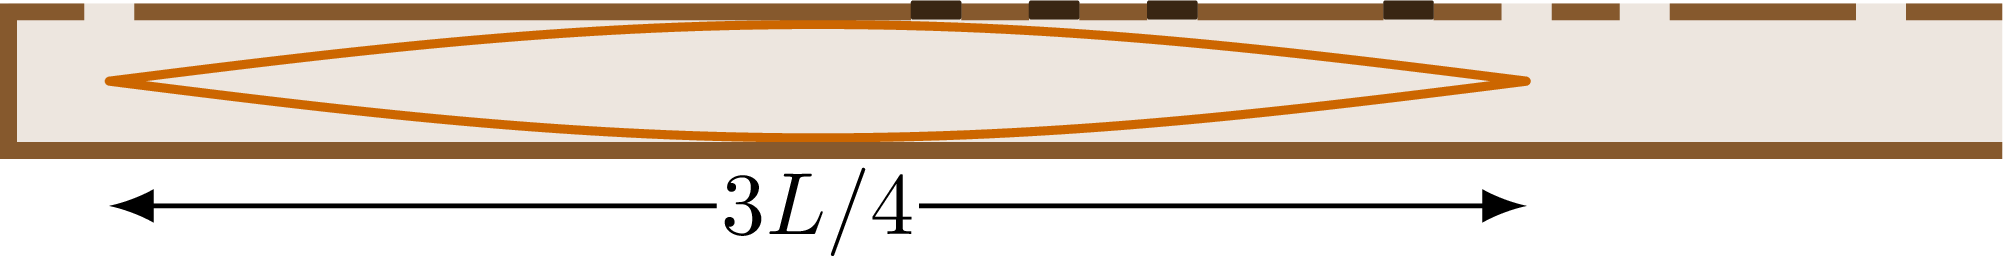 waves_standing_flute-004.png